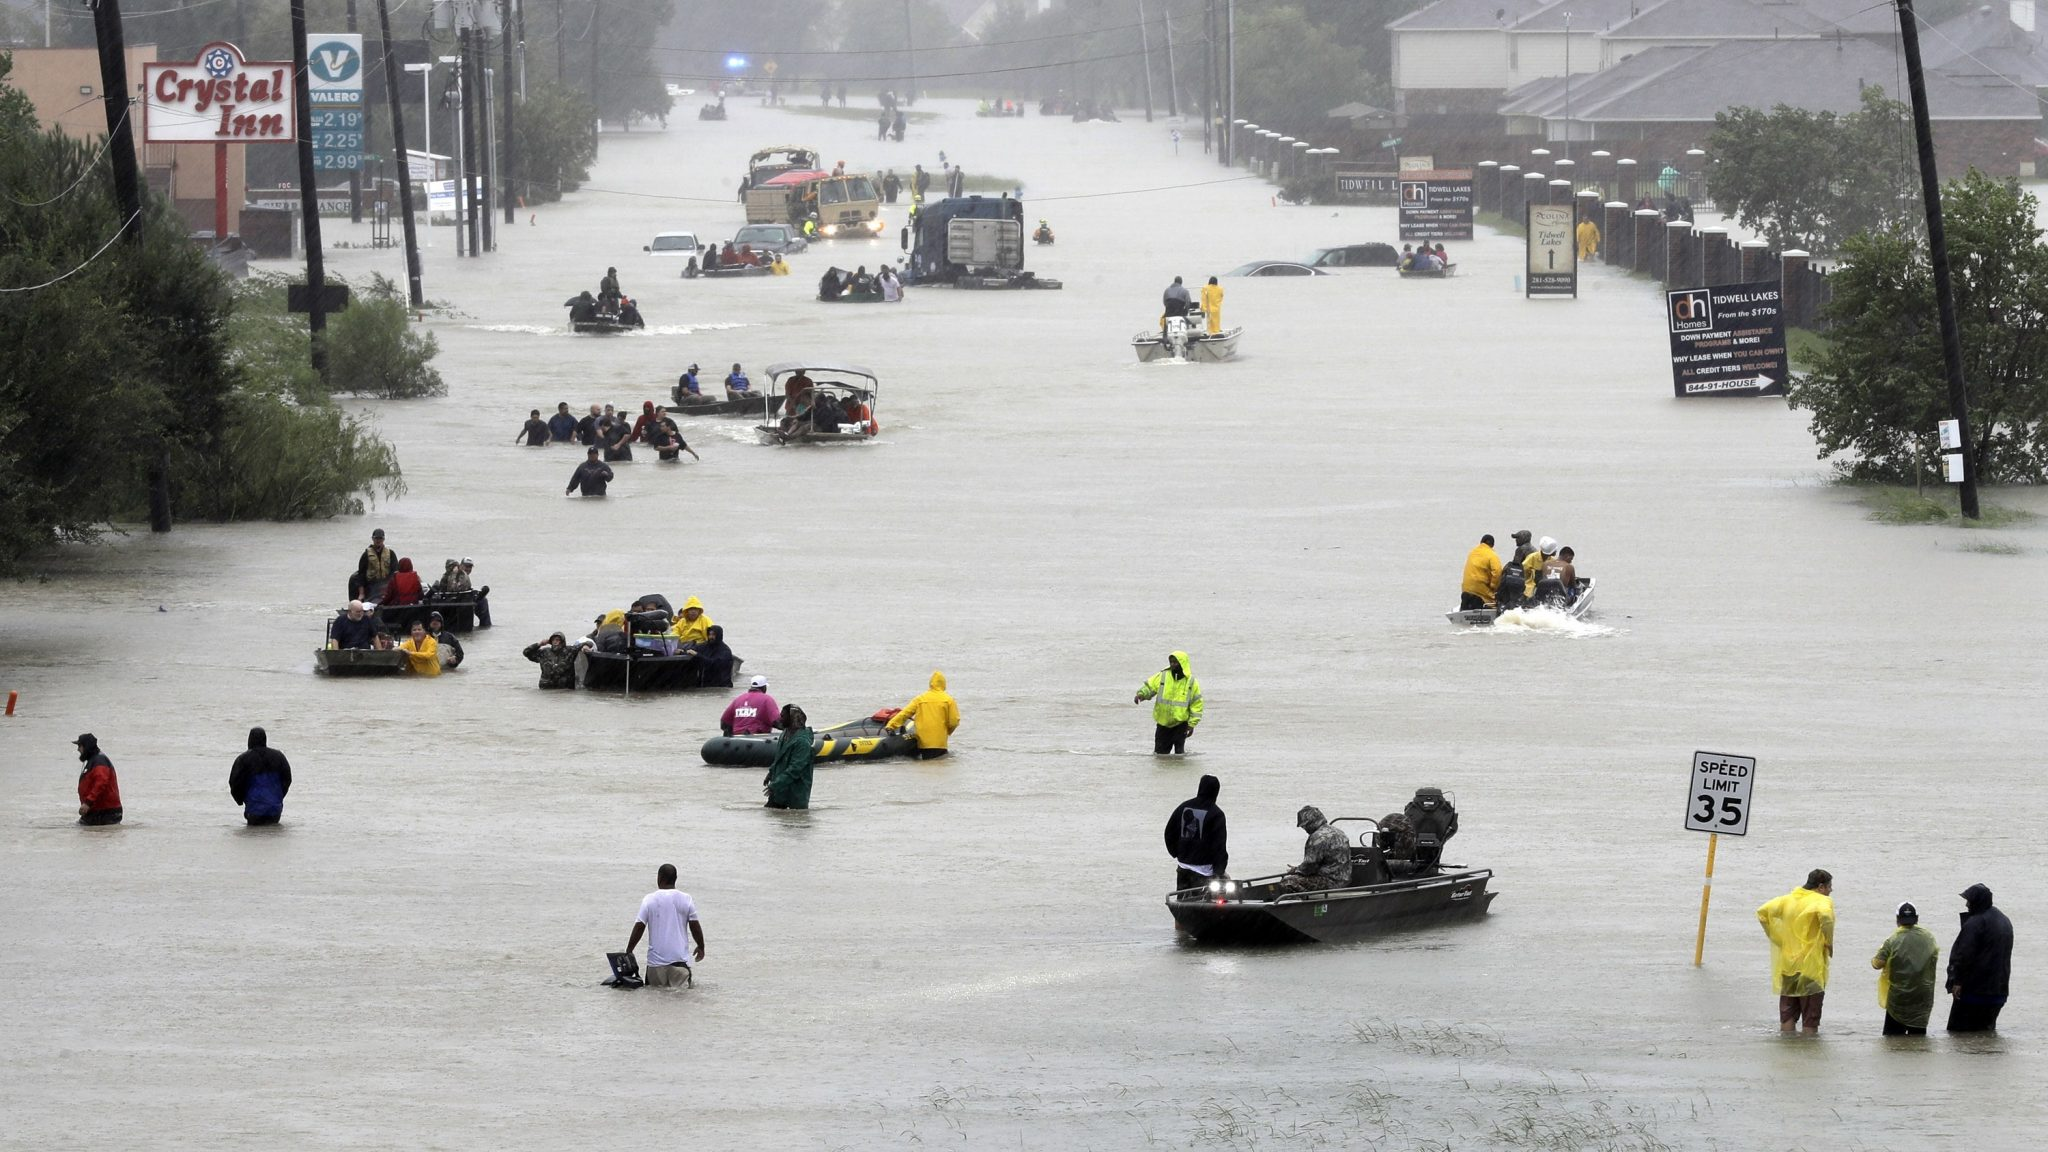 Rescue boats fill a flooded street in Houston after Hurricane Harvey, 2017 (David J Phillip/AP)